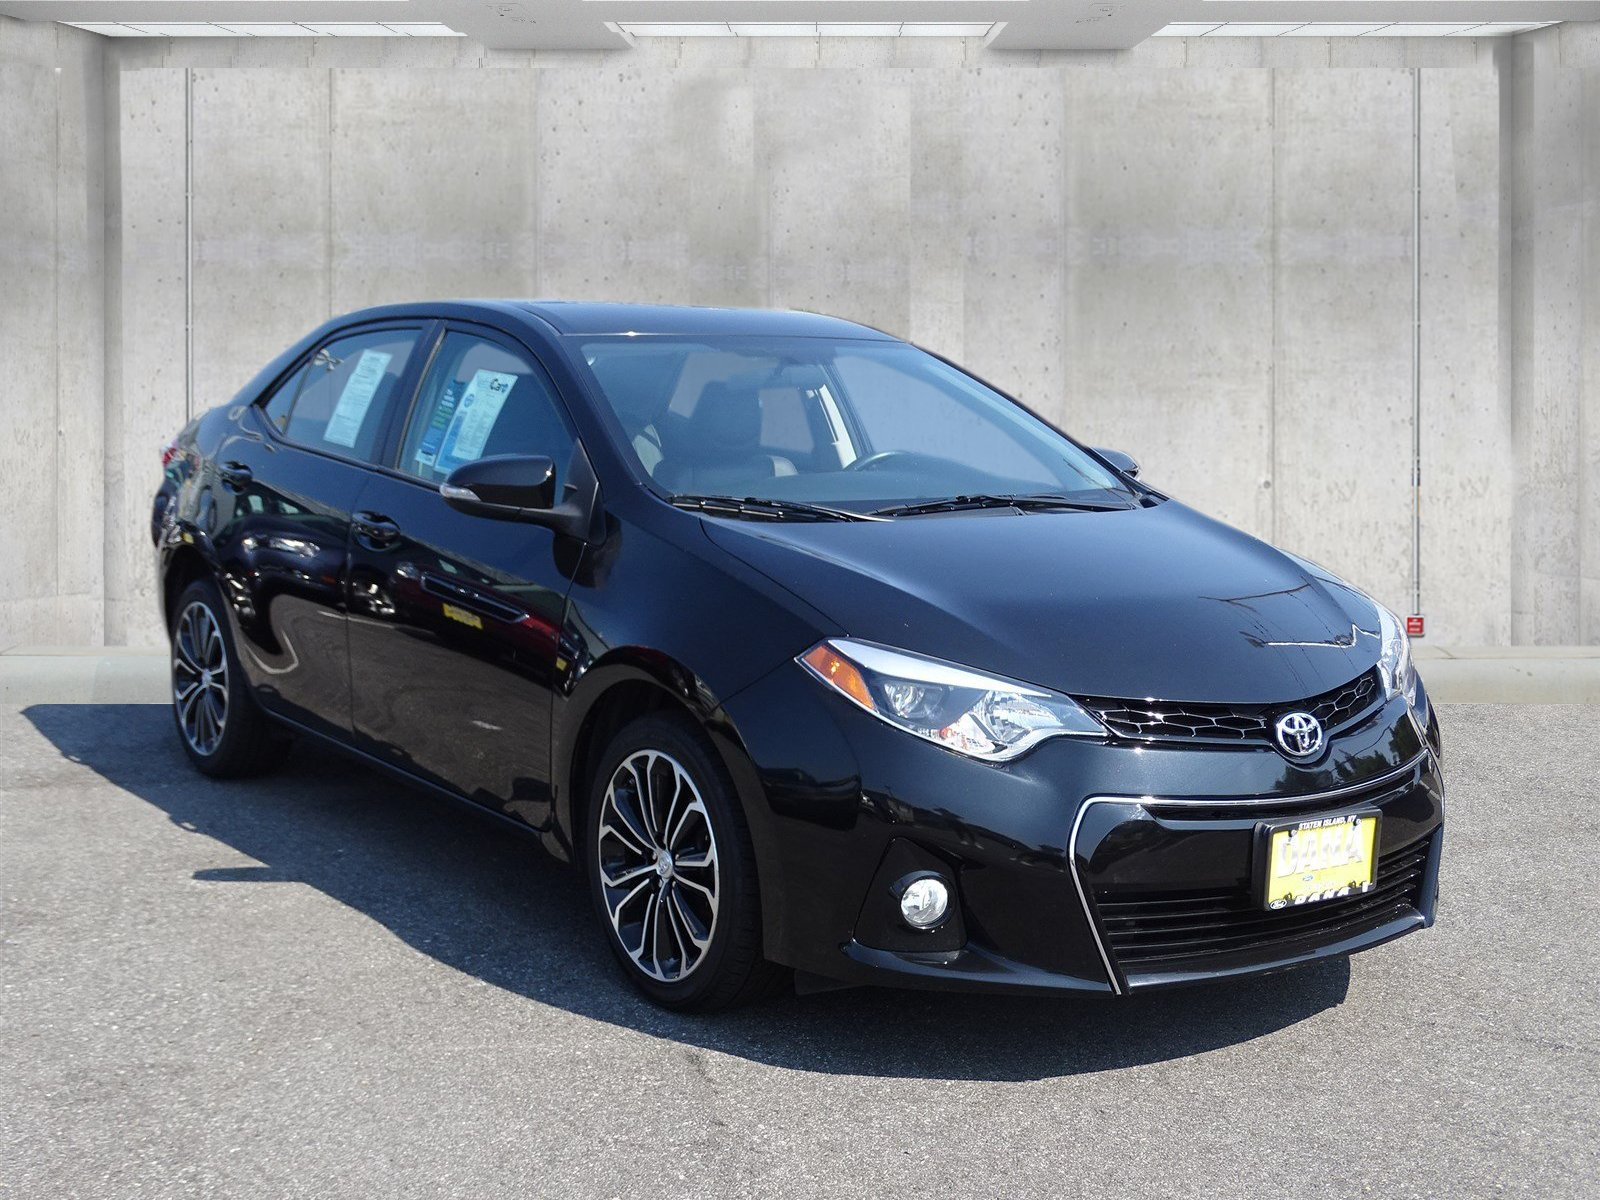 Toyota Corolla Tire Pressure Indicator 2015 Low Warning Light Pre Owned Sedan In Staten Island 1600x1200